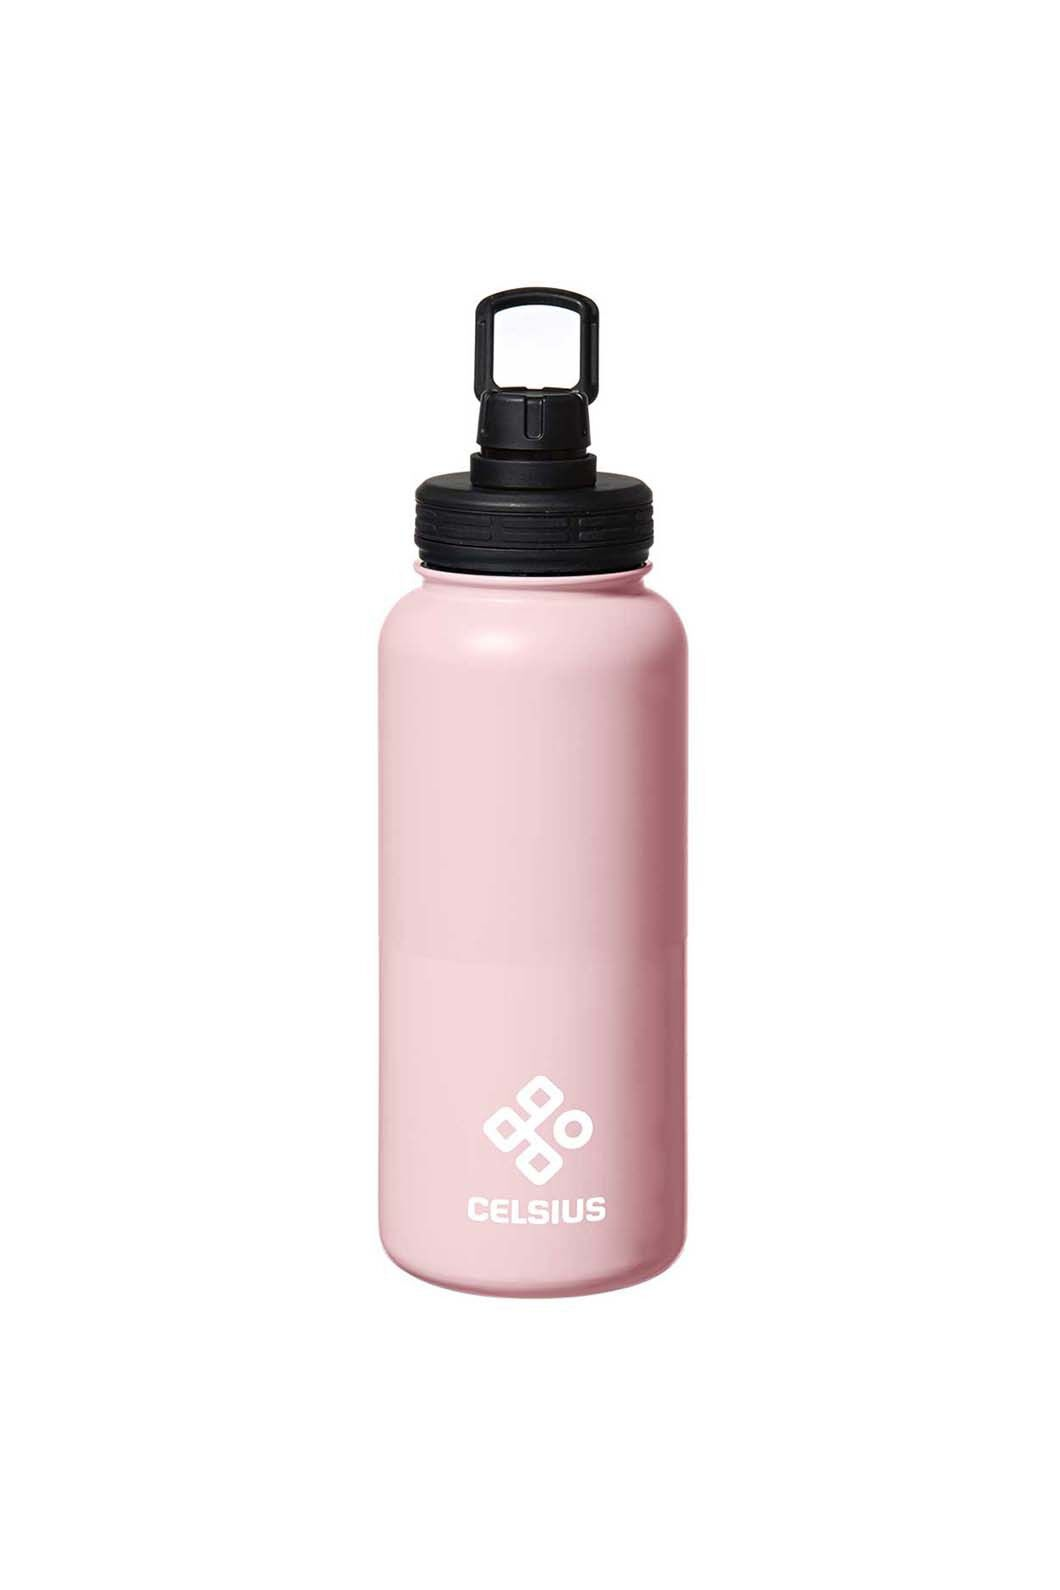 Celsius Stainless Insulated 950ml Water Bottle, Pink, hi-res